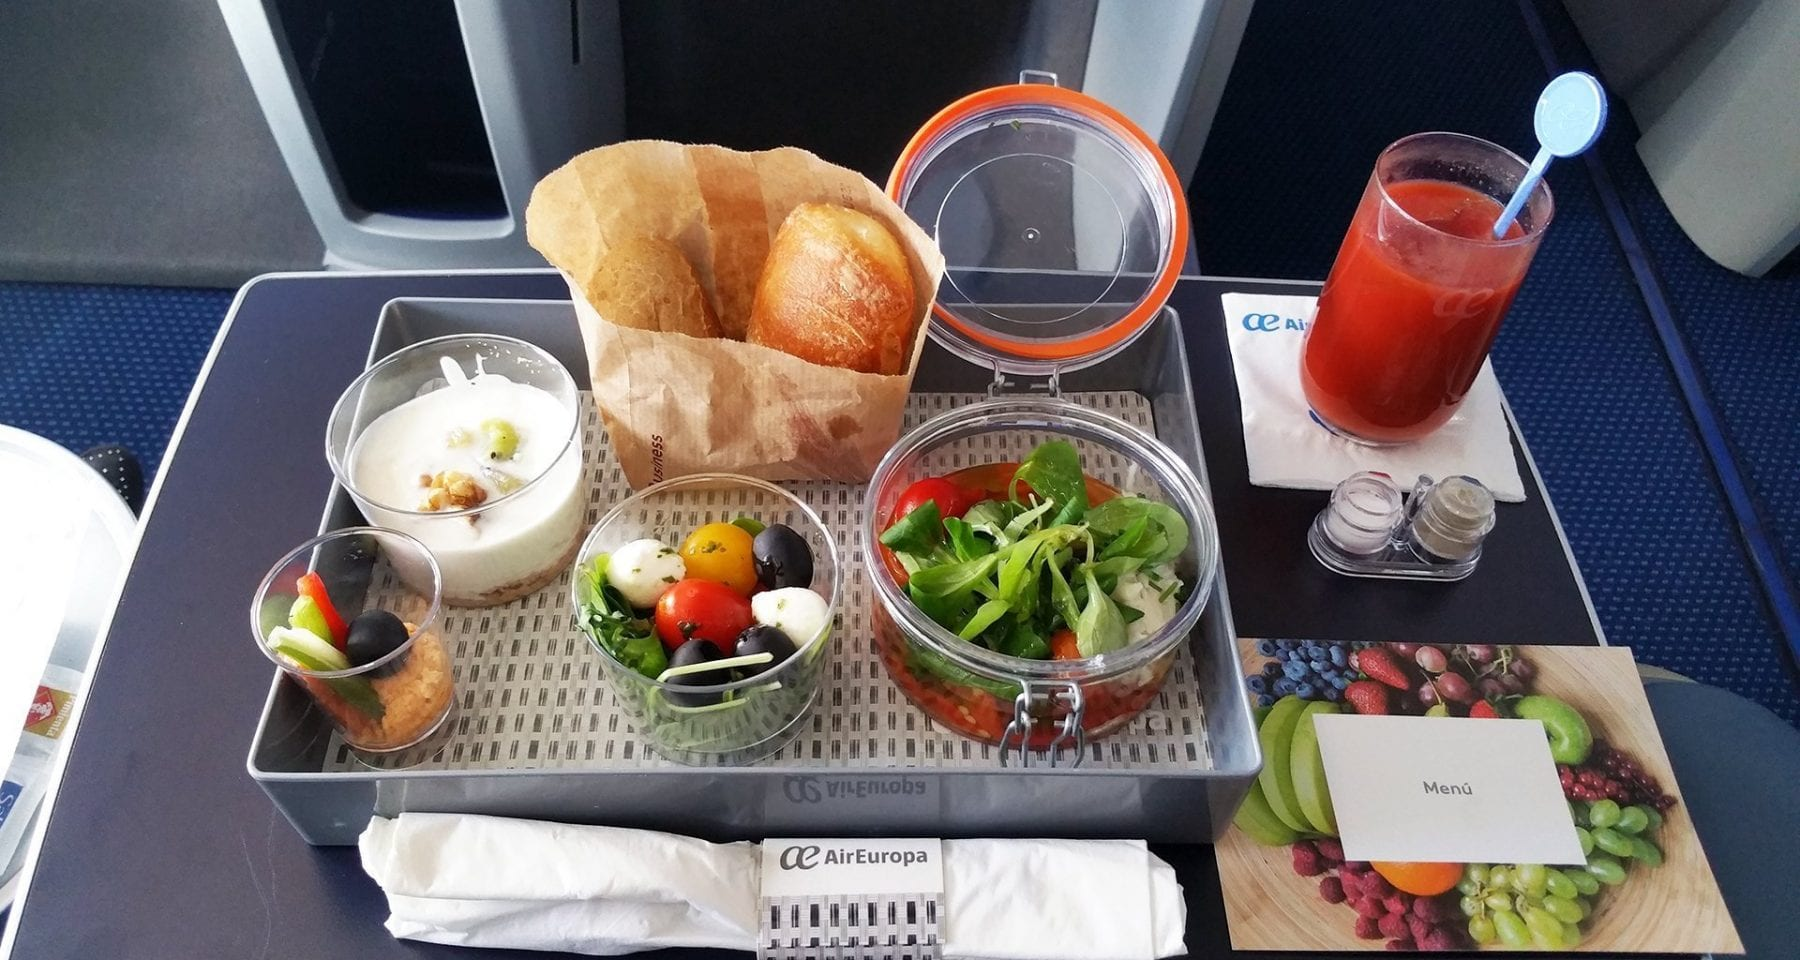 Air Europa business class meal salad